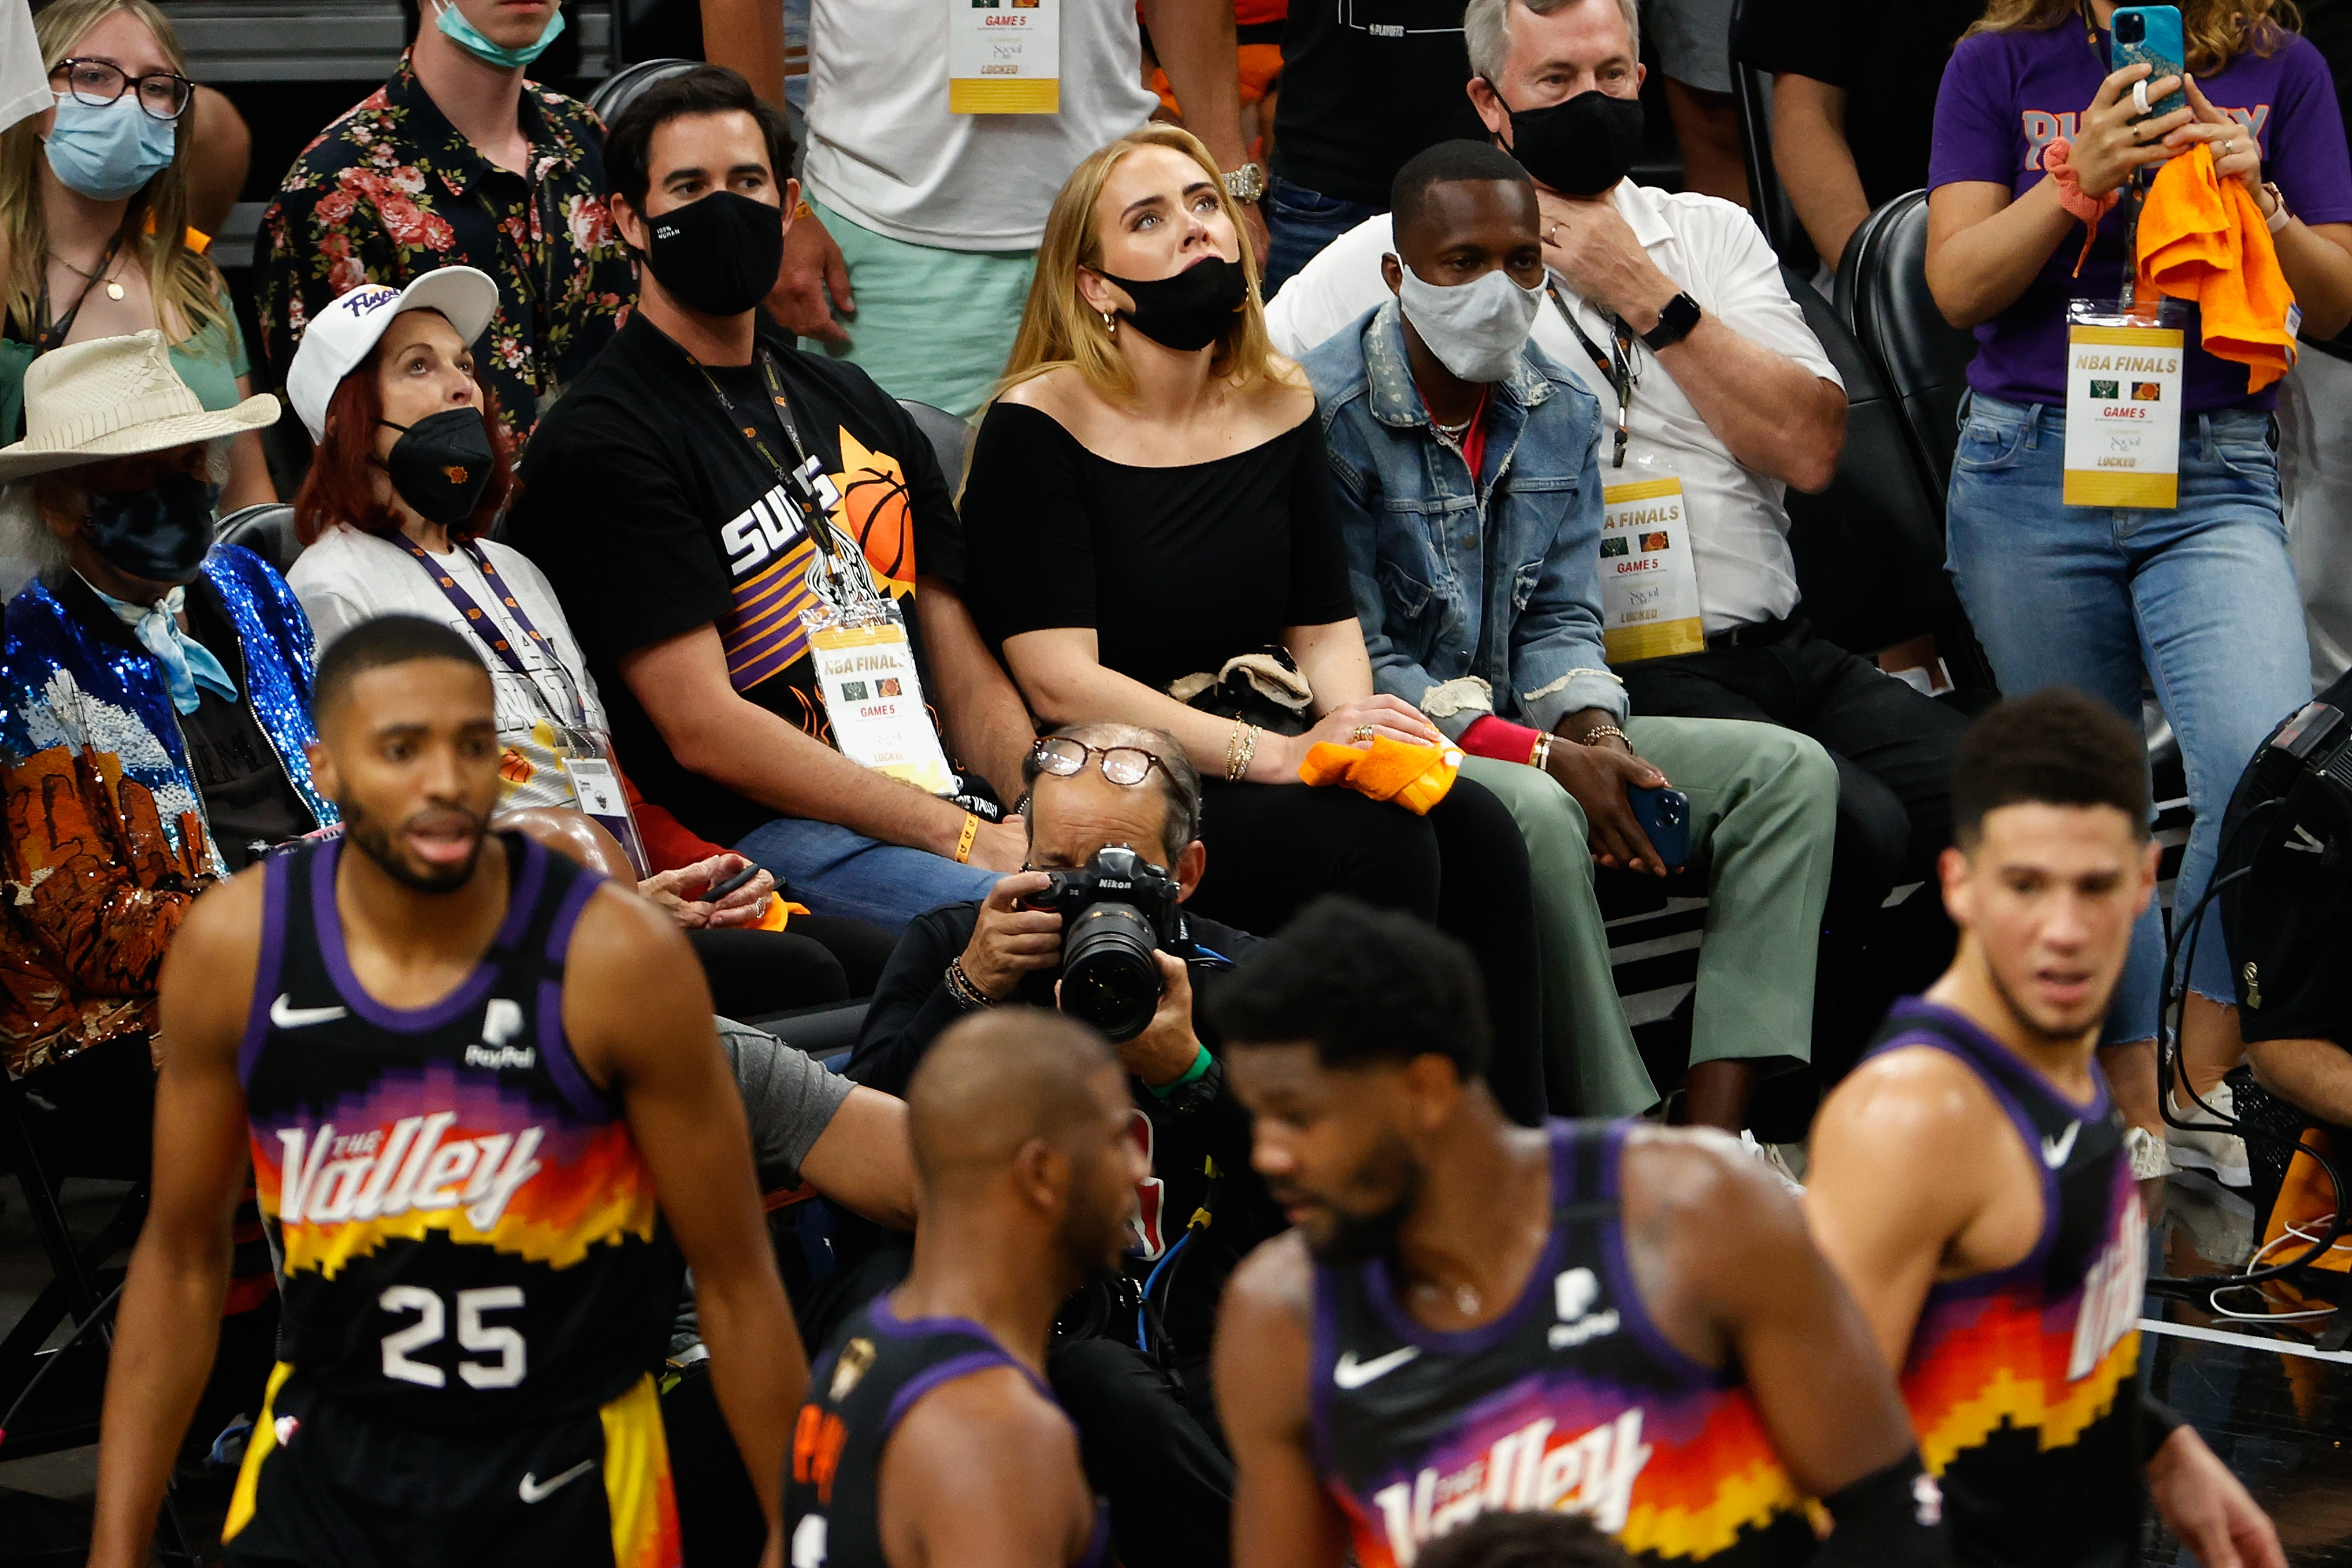 Singer Adele and Rich Paul attend game five of the NBA Finals at Footprint Center on July 17, 2021 in Phoenix, Arizona.  The Bucks defeated the Suns 123-119.